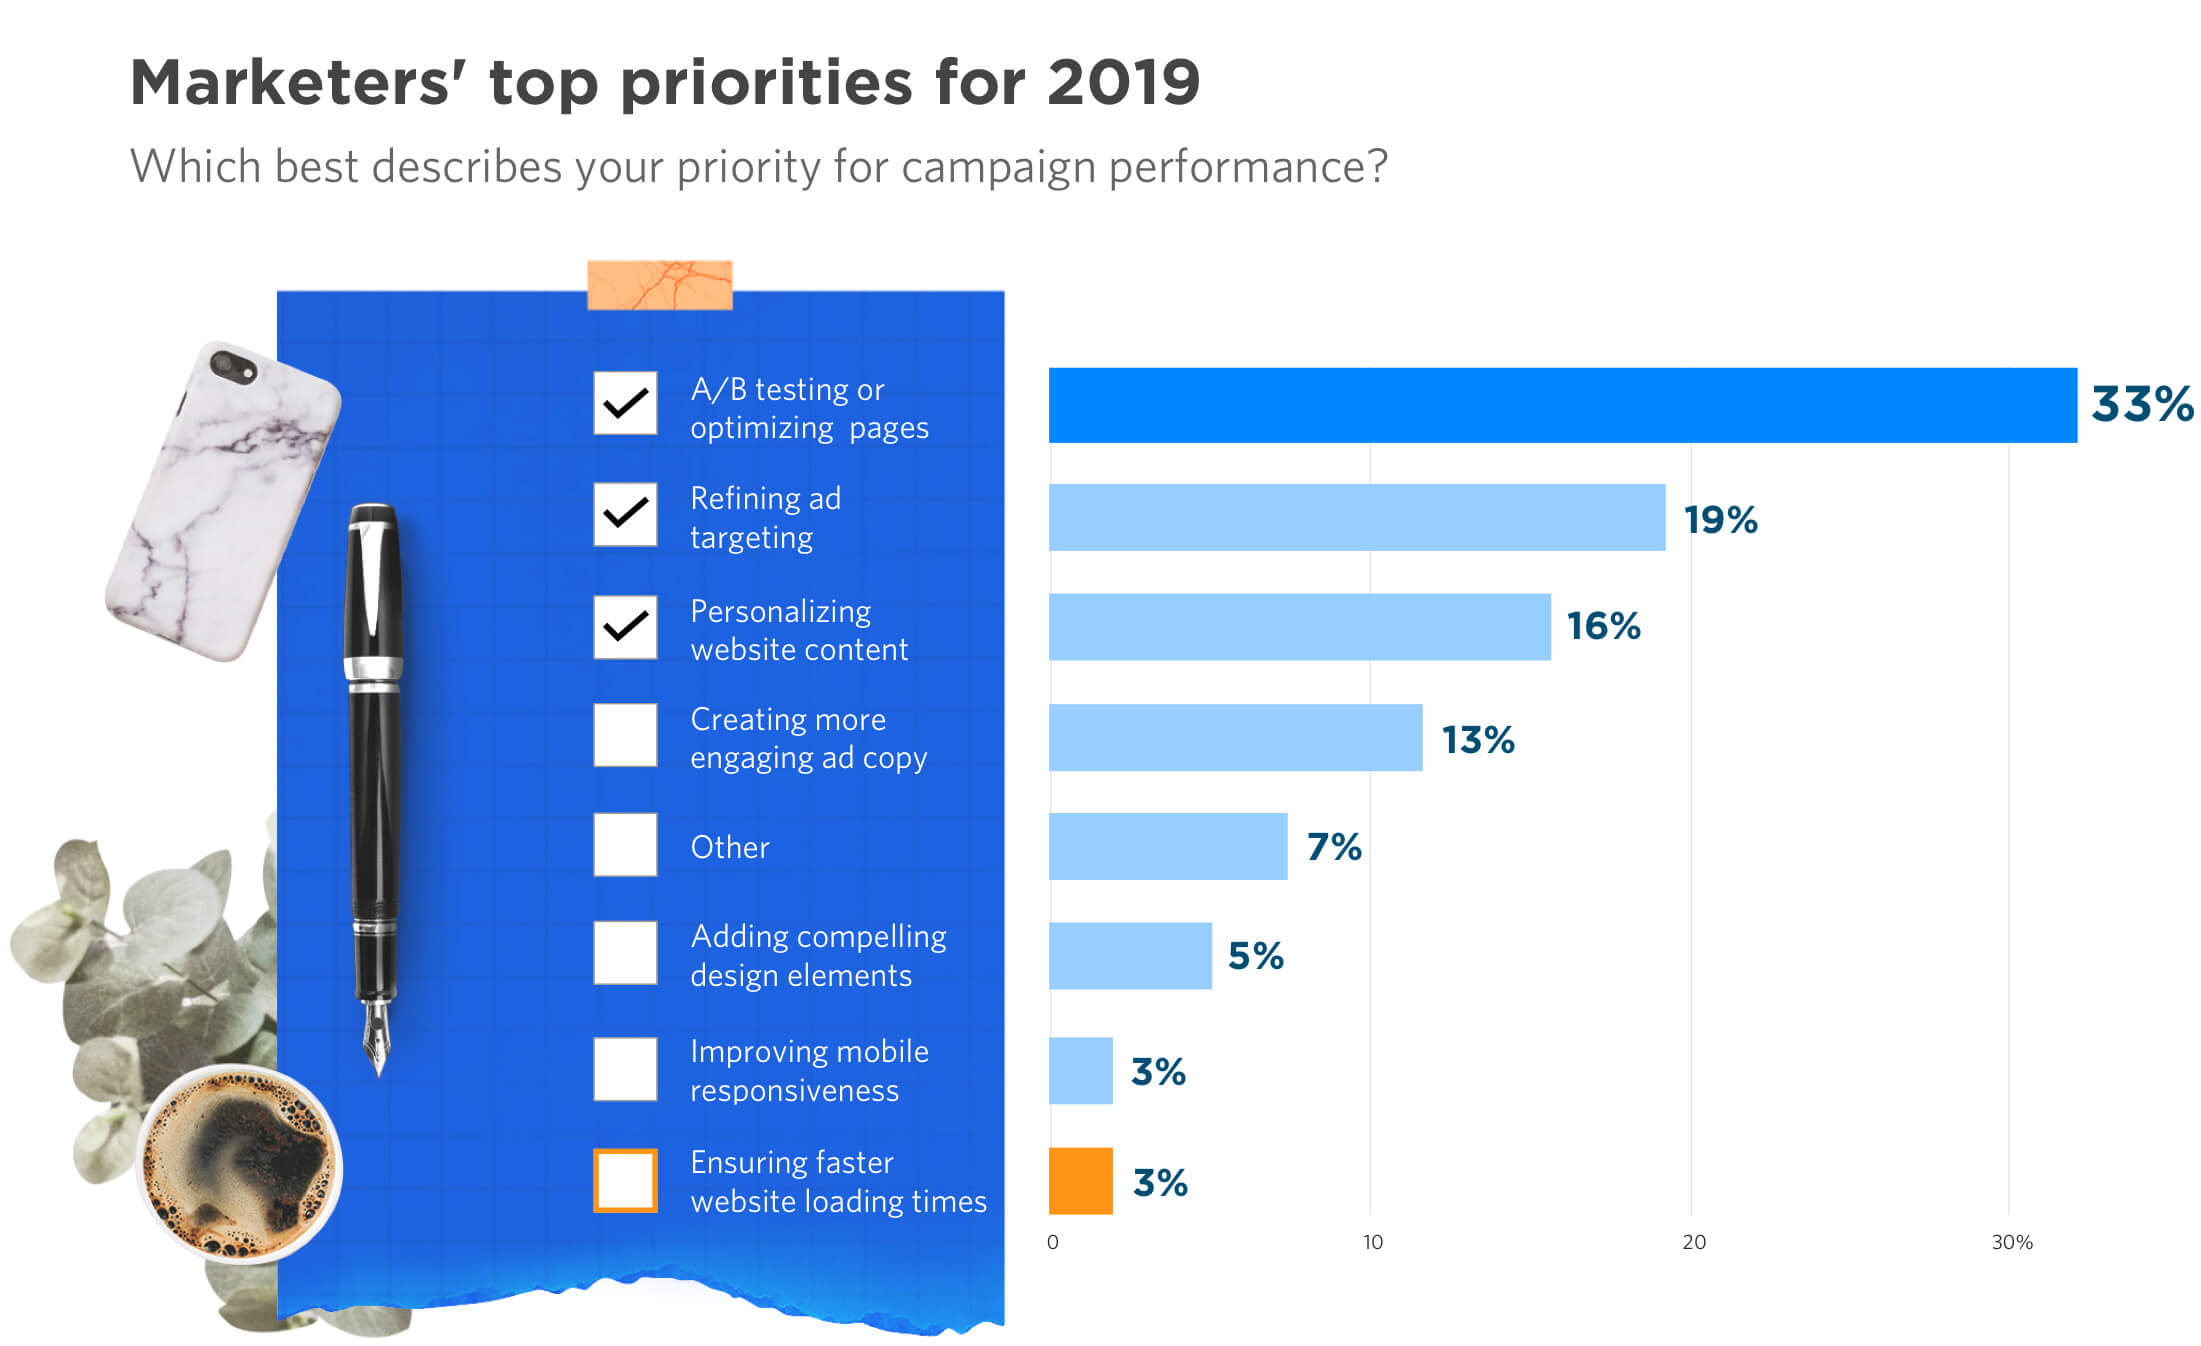 Marketers' Top 5 Priorities for 2019